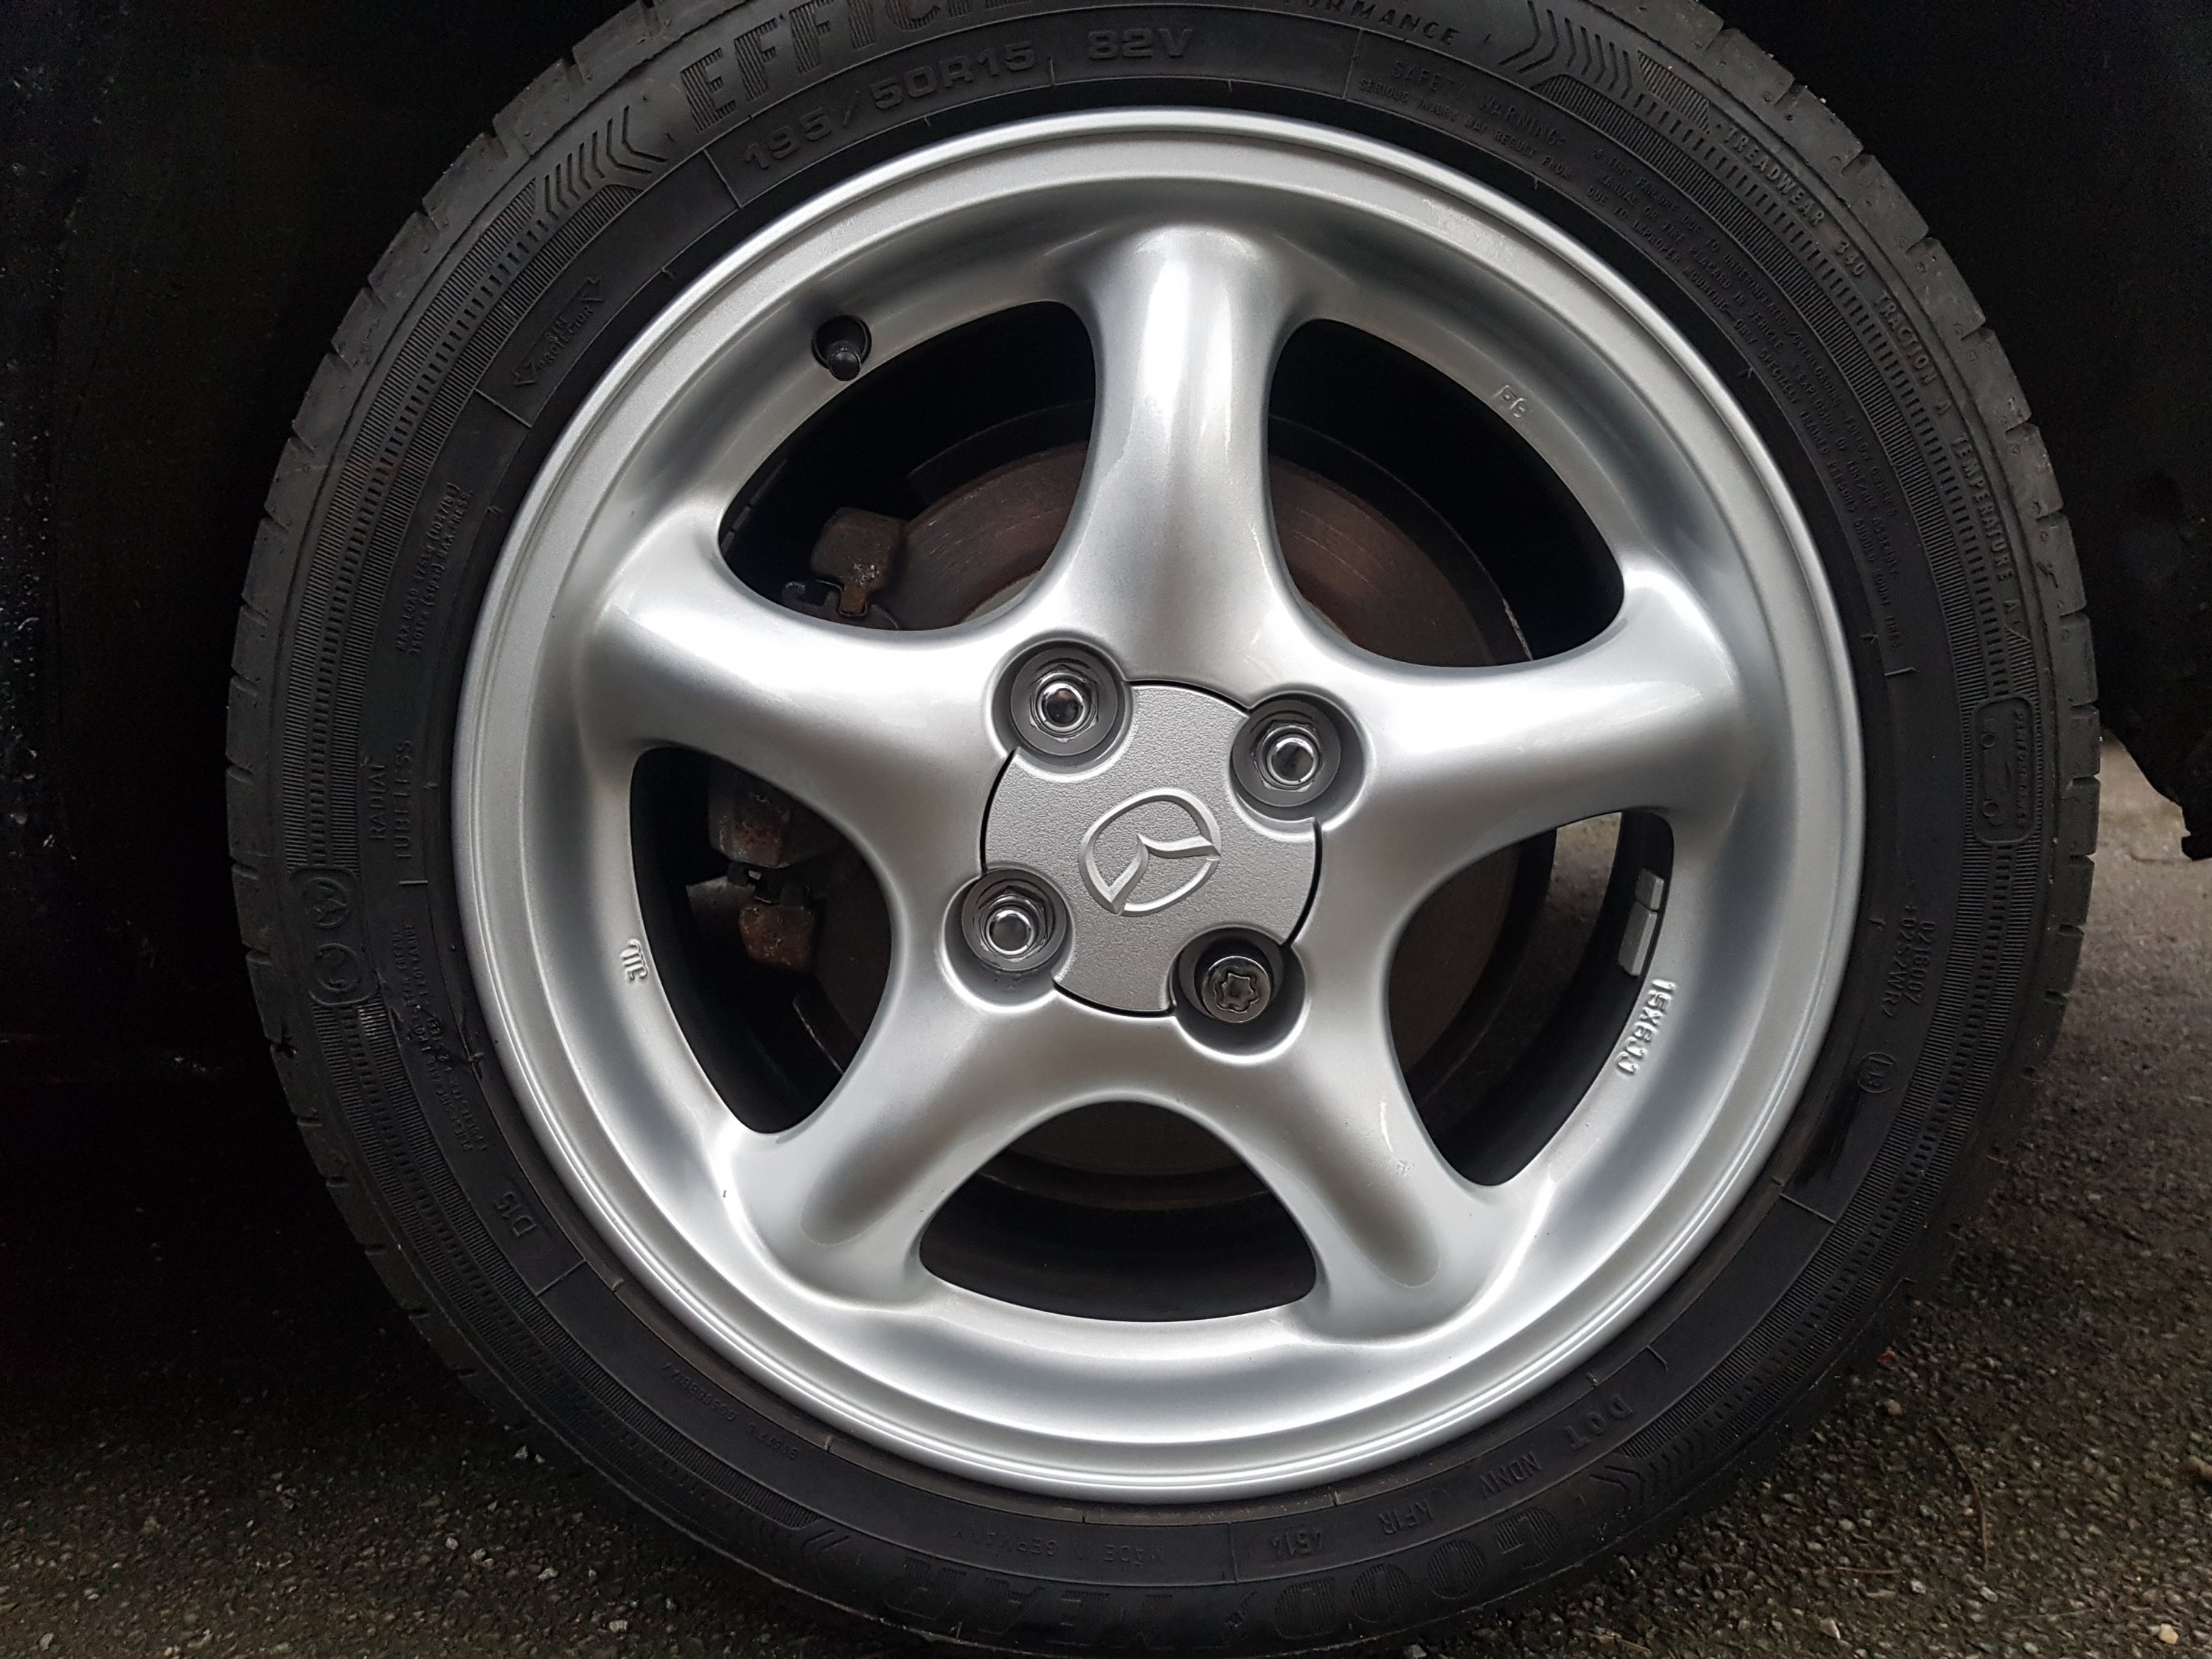 Original Mazda 15 x 6 Alloy Wheel set